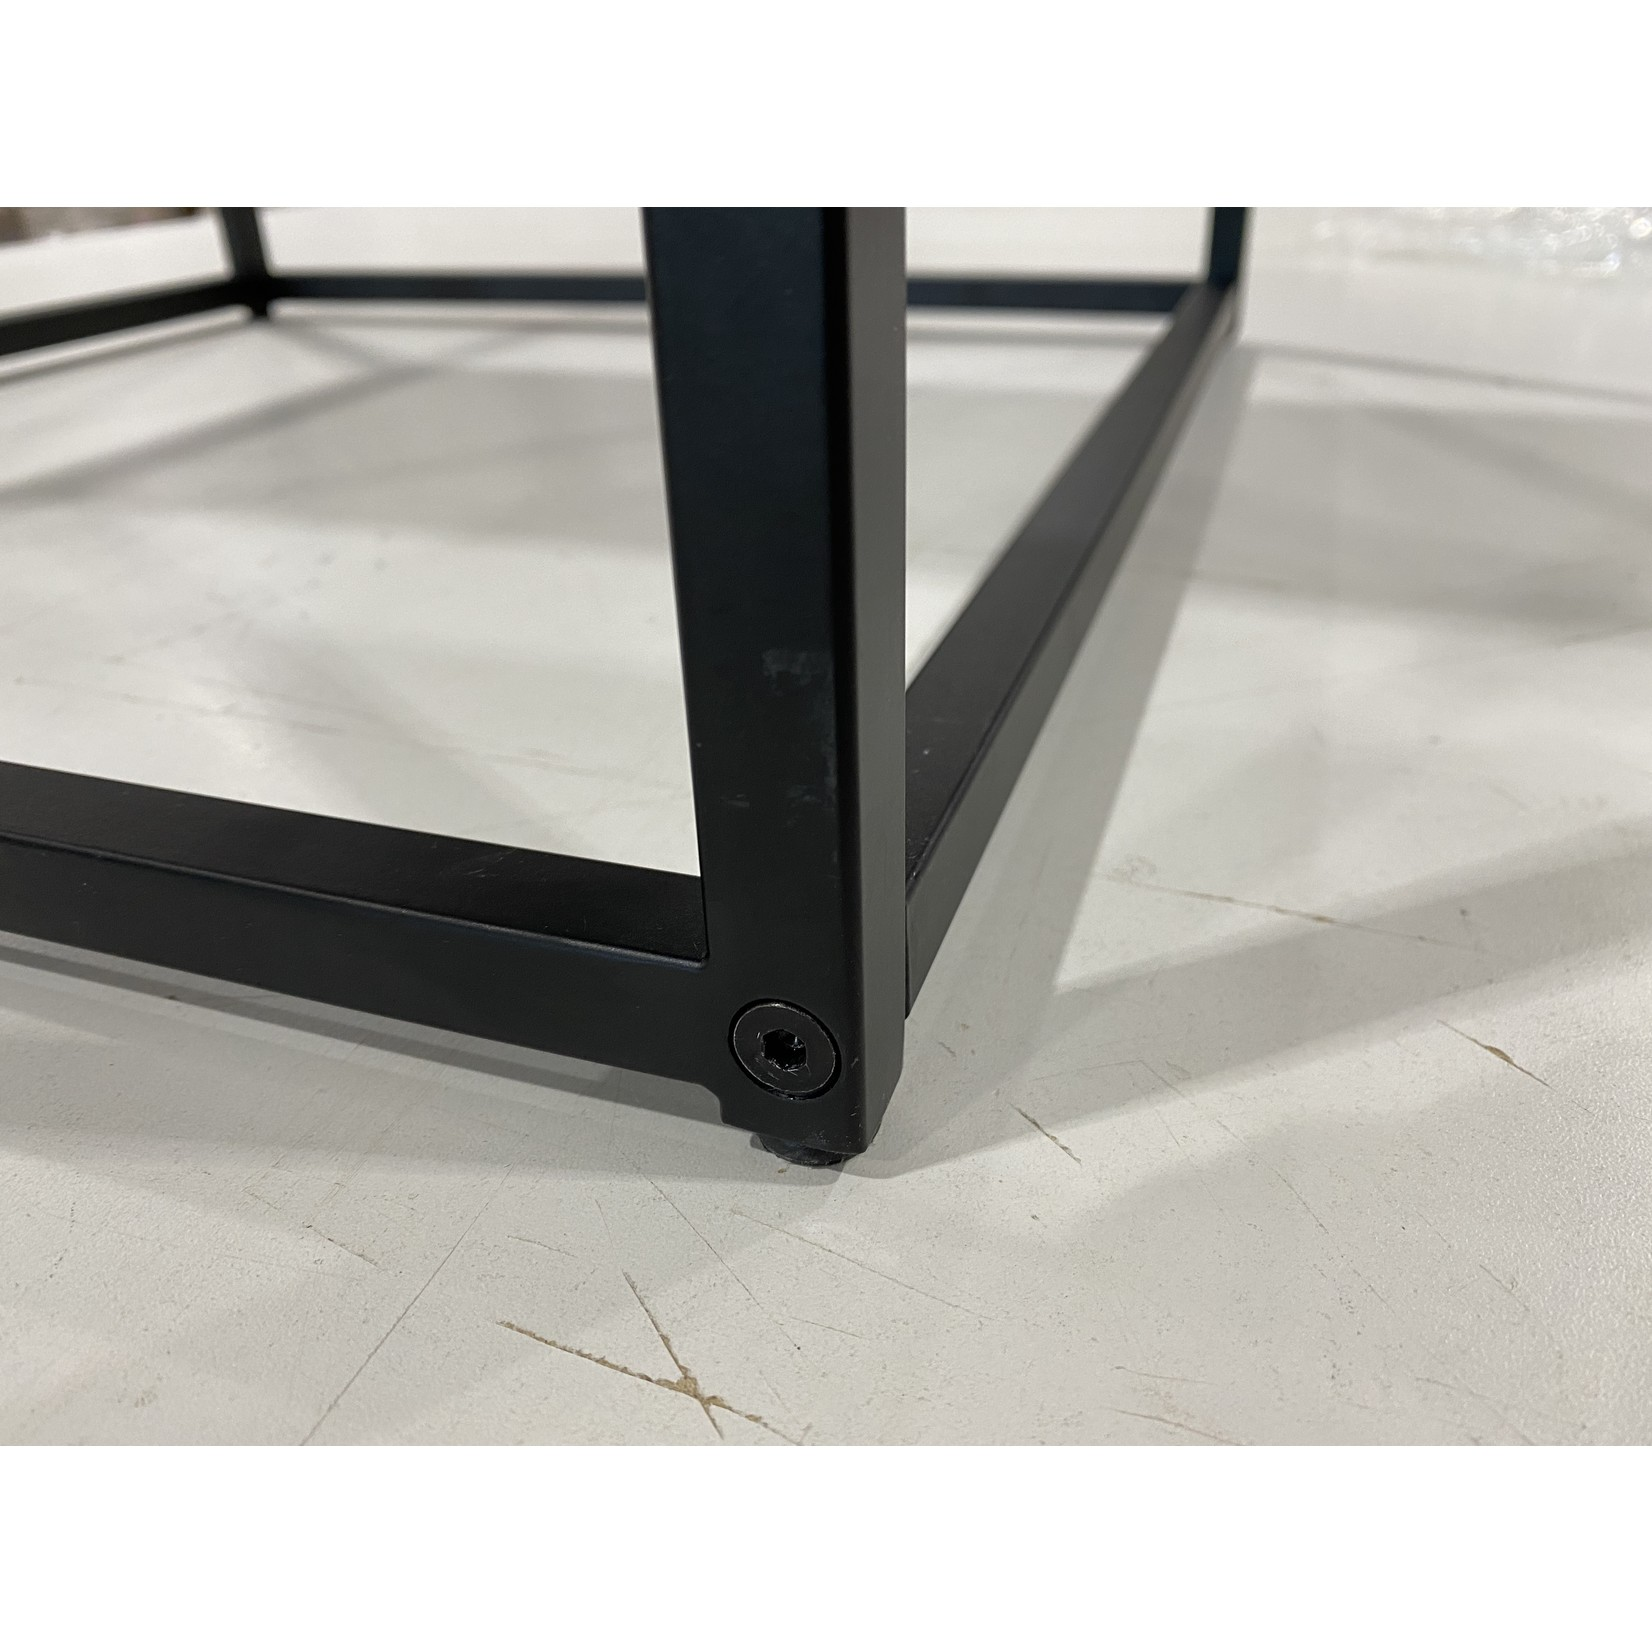 *Duran Glass Top Frame End Table with Storage - Black  - Slight Scratches